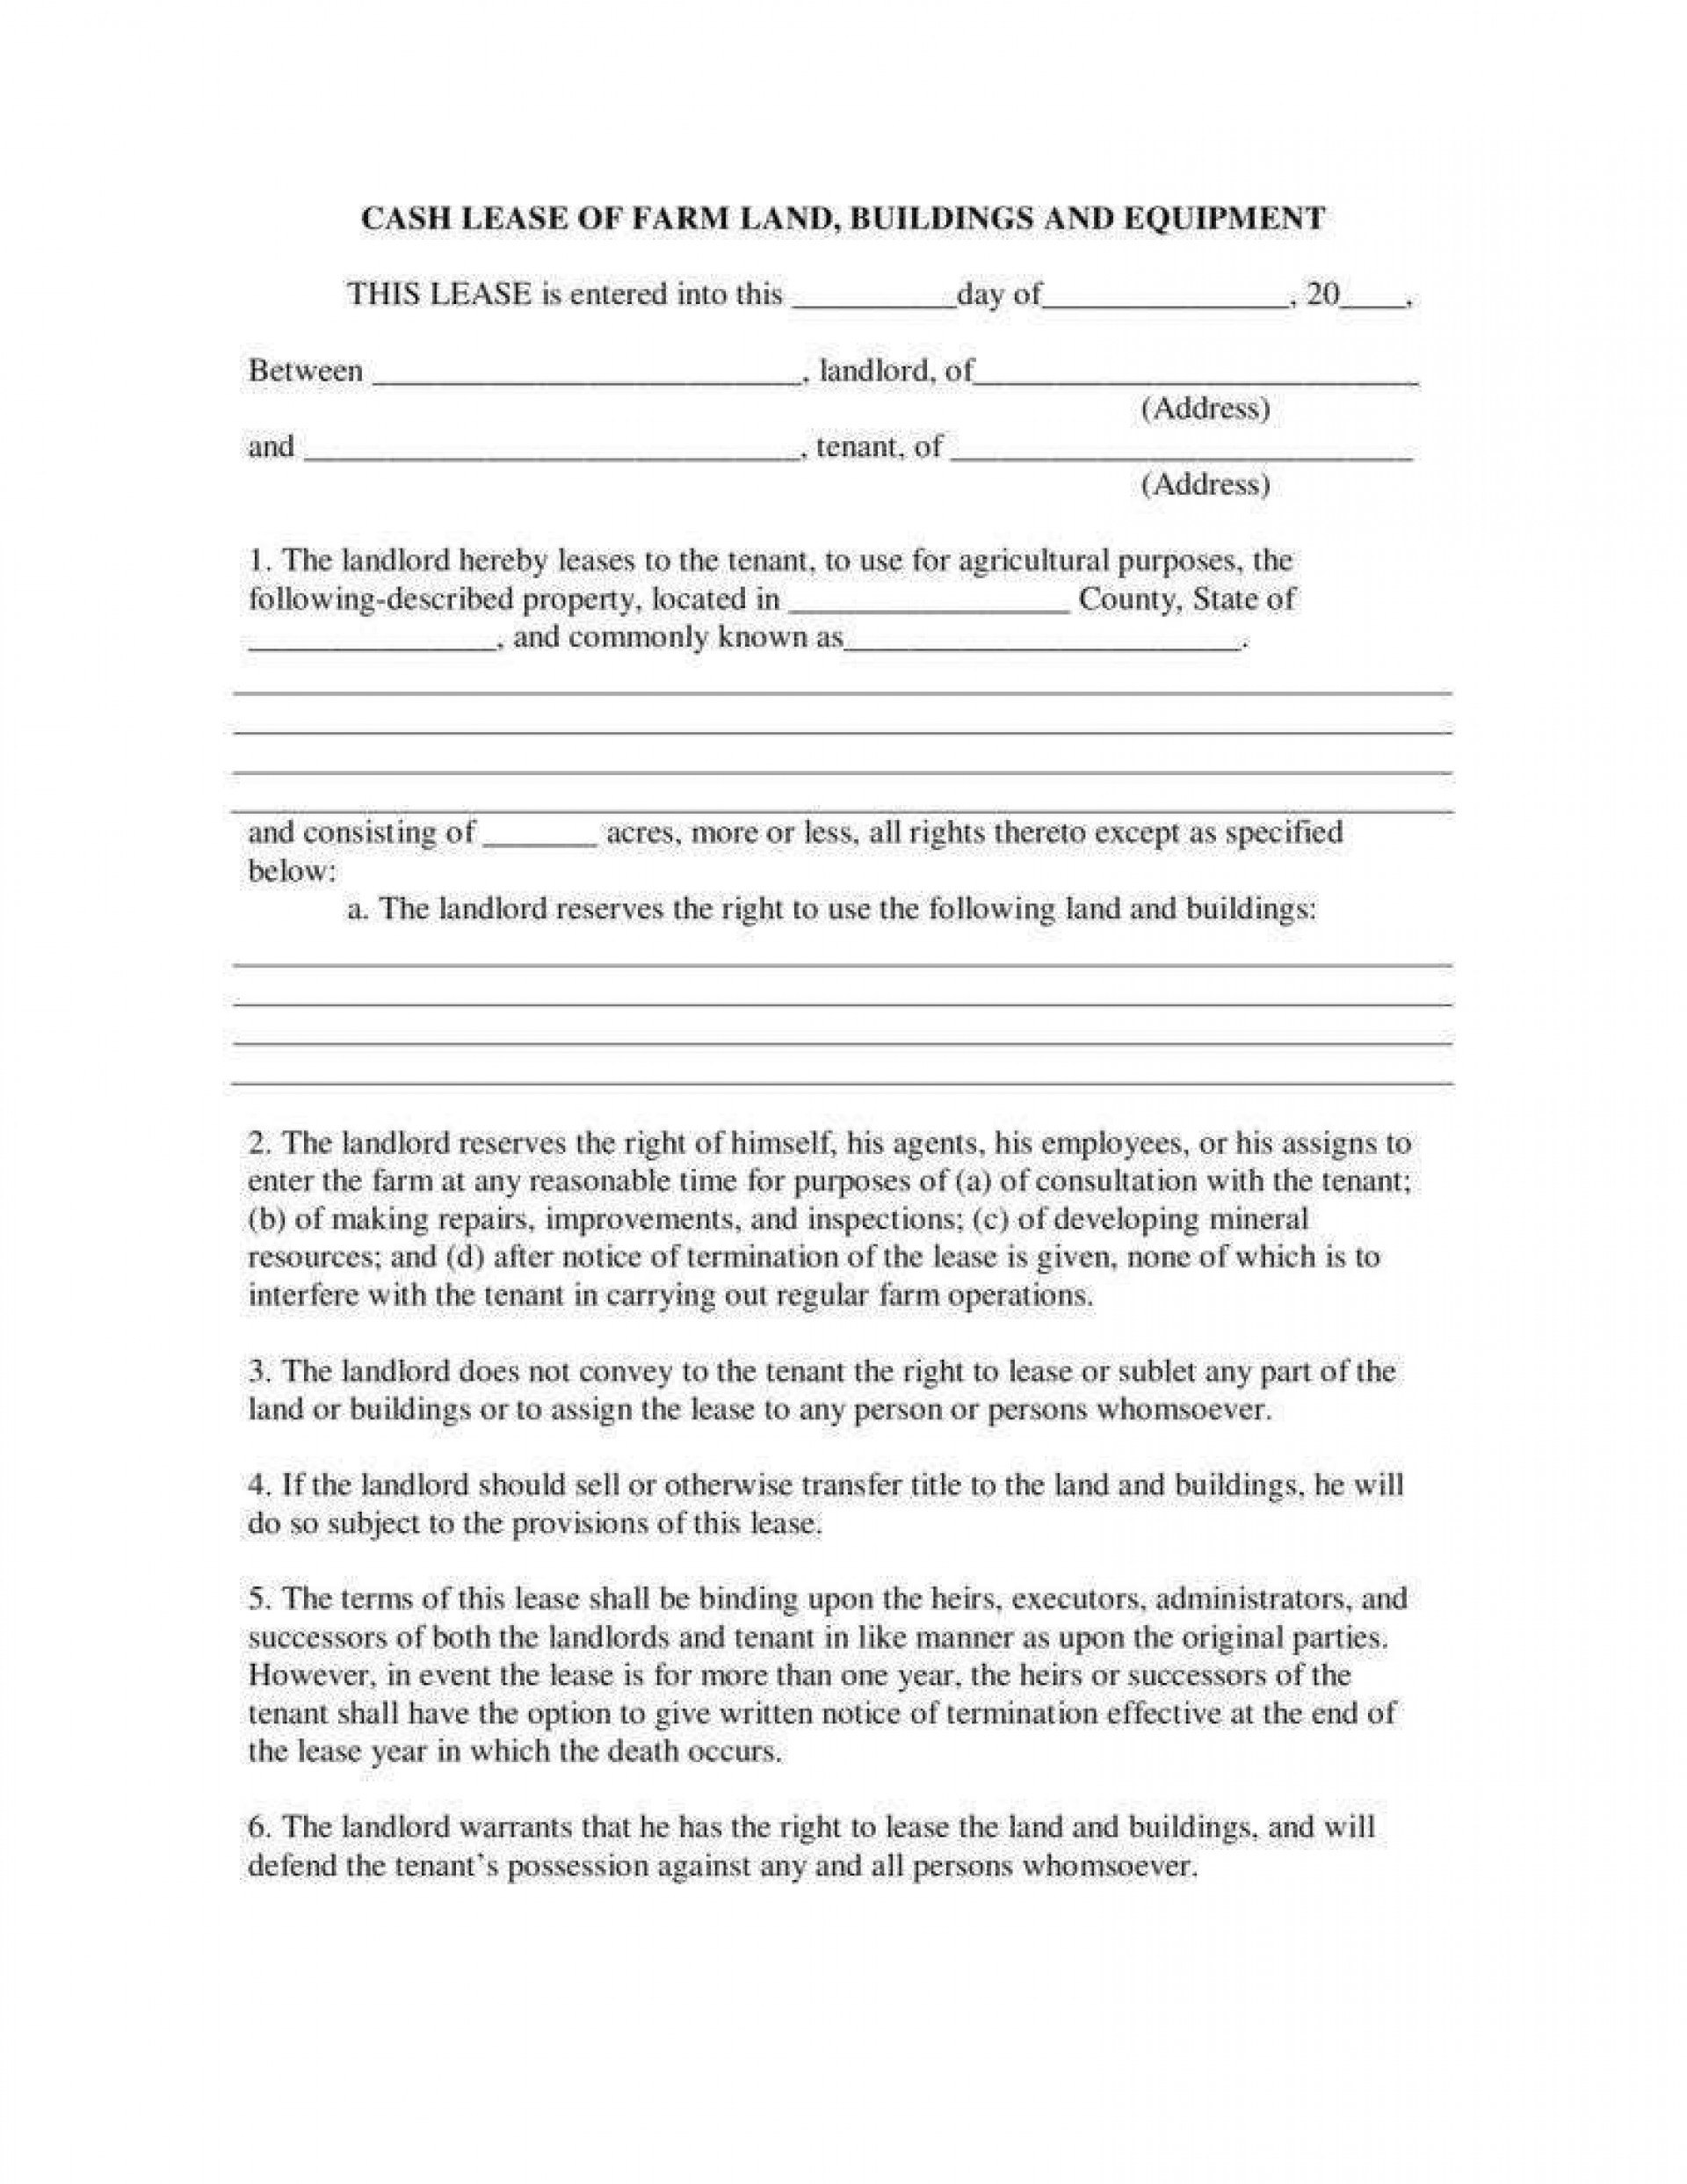 003 Stunning Lease Agreement Template Word South Africa Design  Free Simple Residential Commercial Document1920